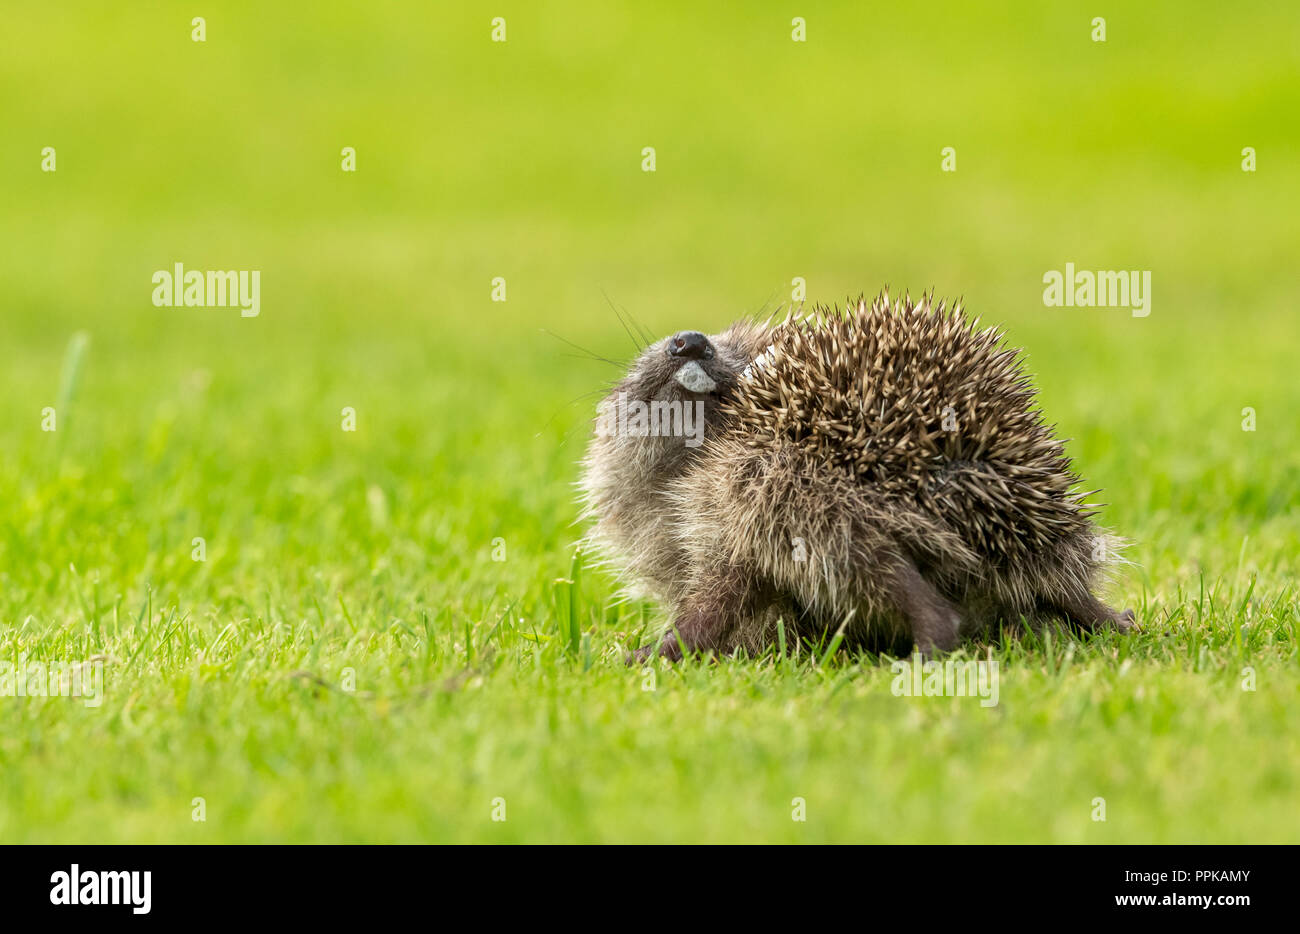 Hedgehog, young, wild, European hedgehog indulging in the strange behaviour of self-annointing. Scientific name: Erinanaceus europaeus. Horizontal - Stock Image